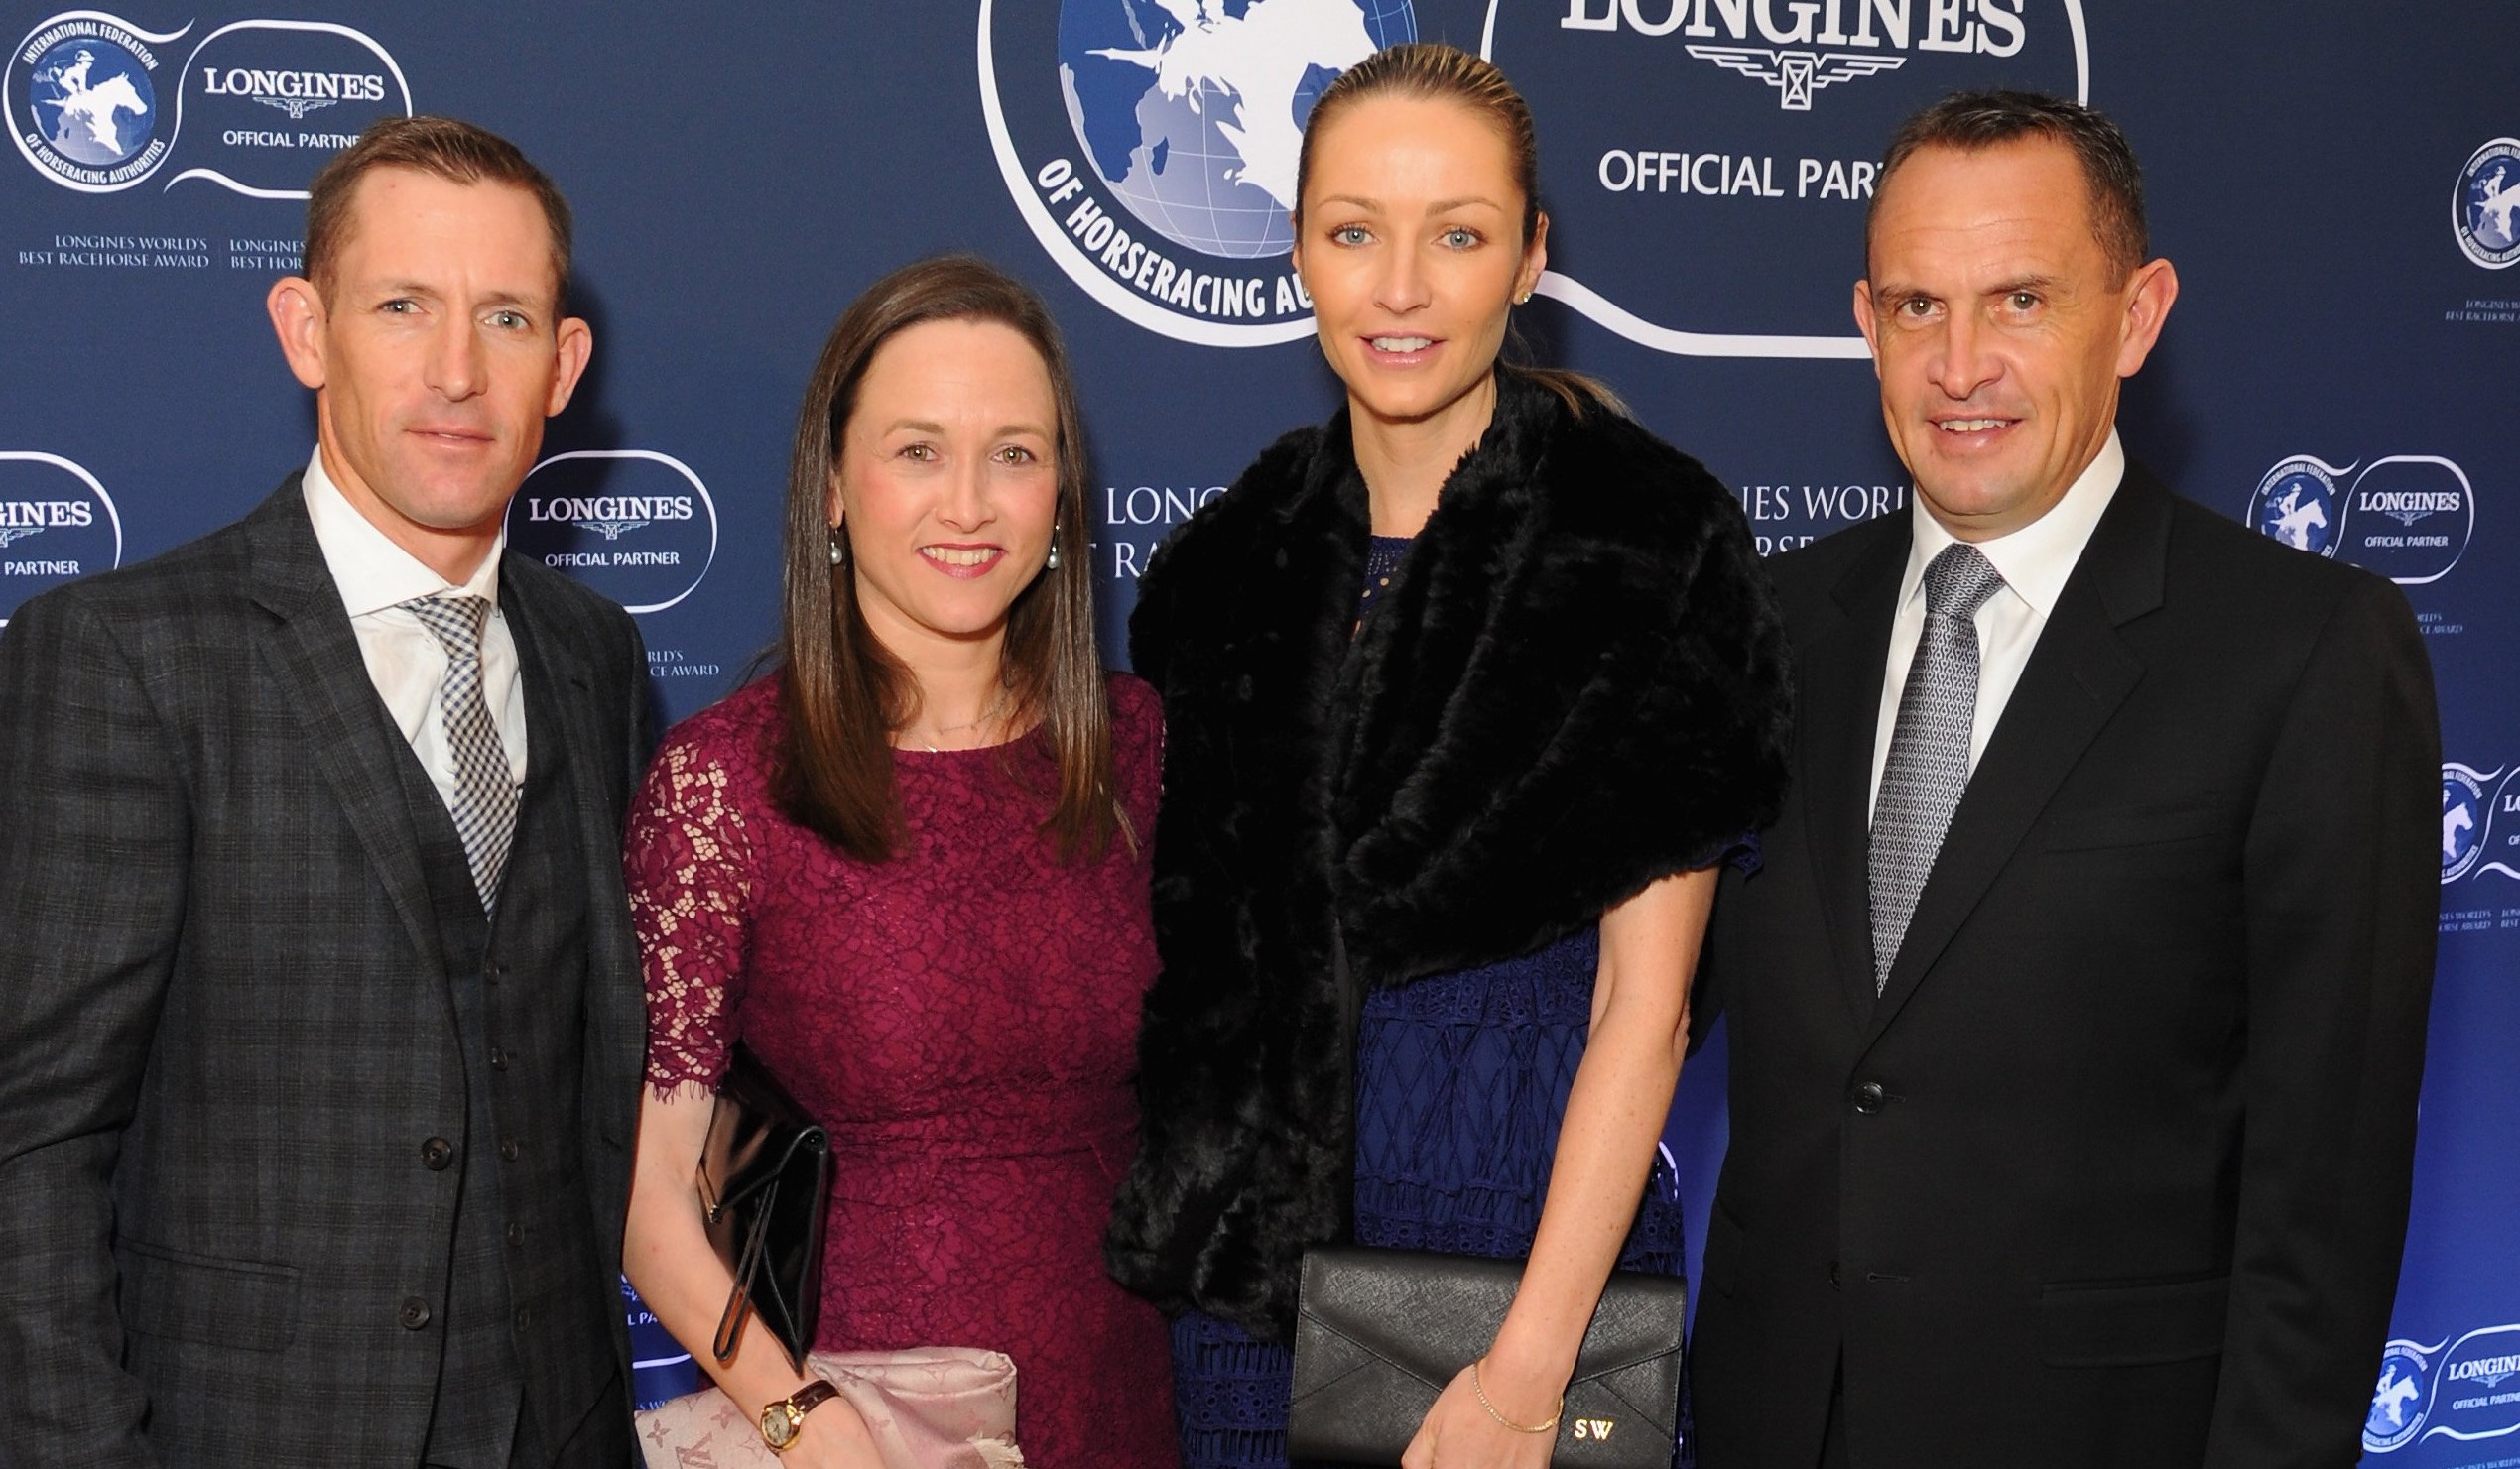 Hugh and Christine Bowman (left) with Chris and Stephanie Waller. Photo: Longines